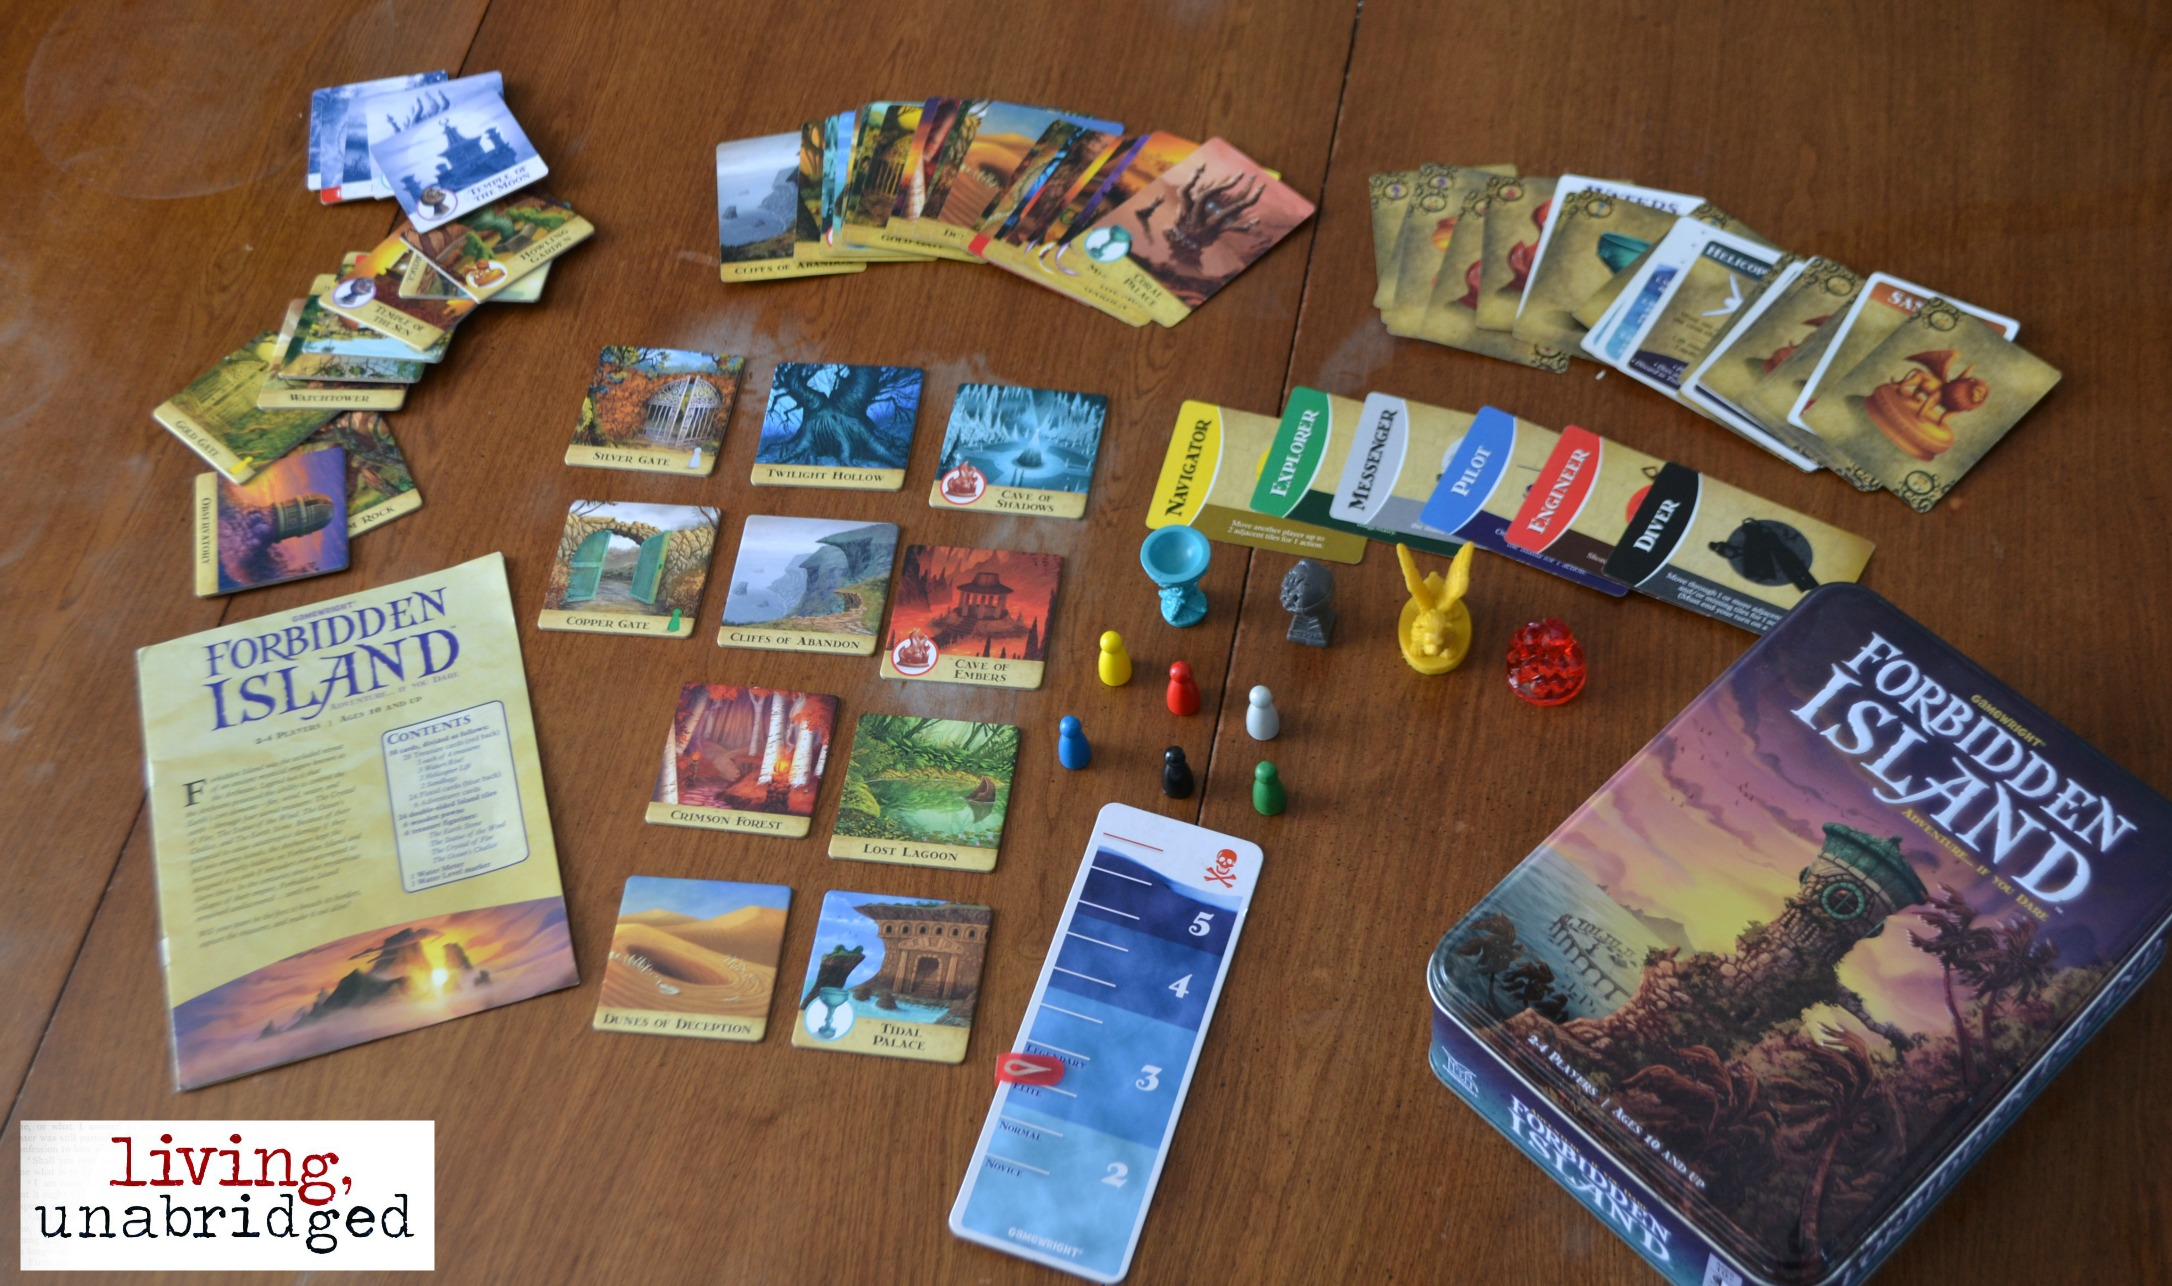 Forbidden Island furthermore Carcassonne Expansions Ipad together with A A Ba E Aec E further Fbe F B C Ab B B A also Ngsversion Adapt. on 45 family board games